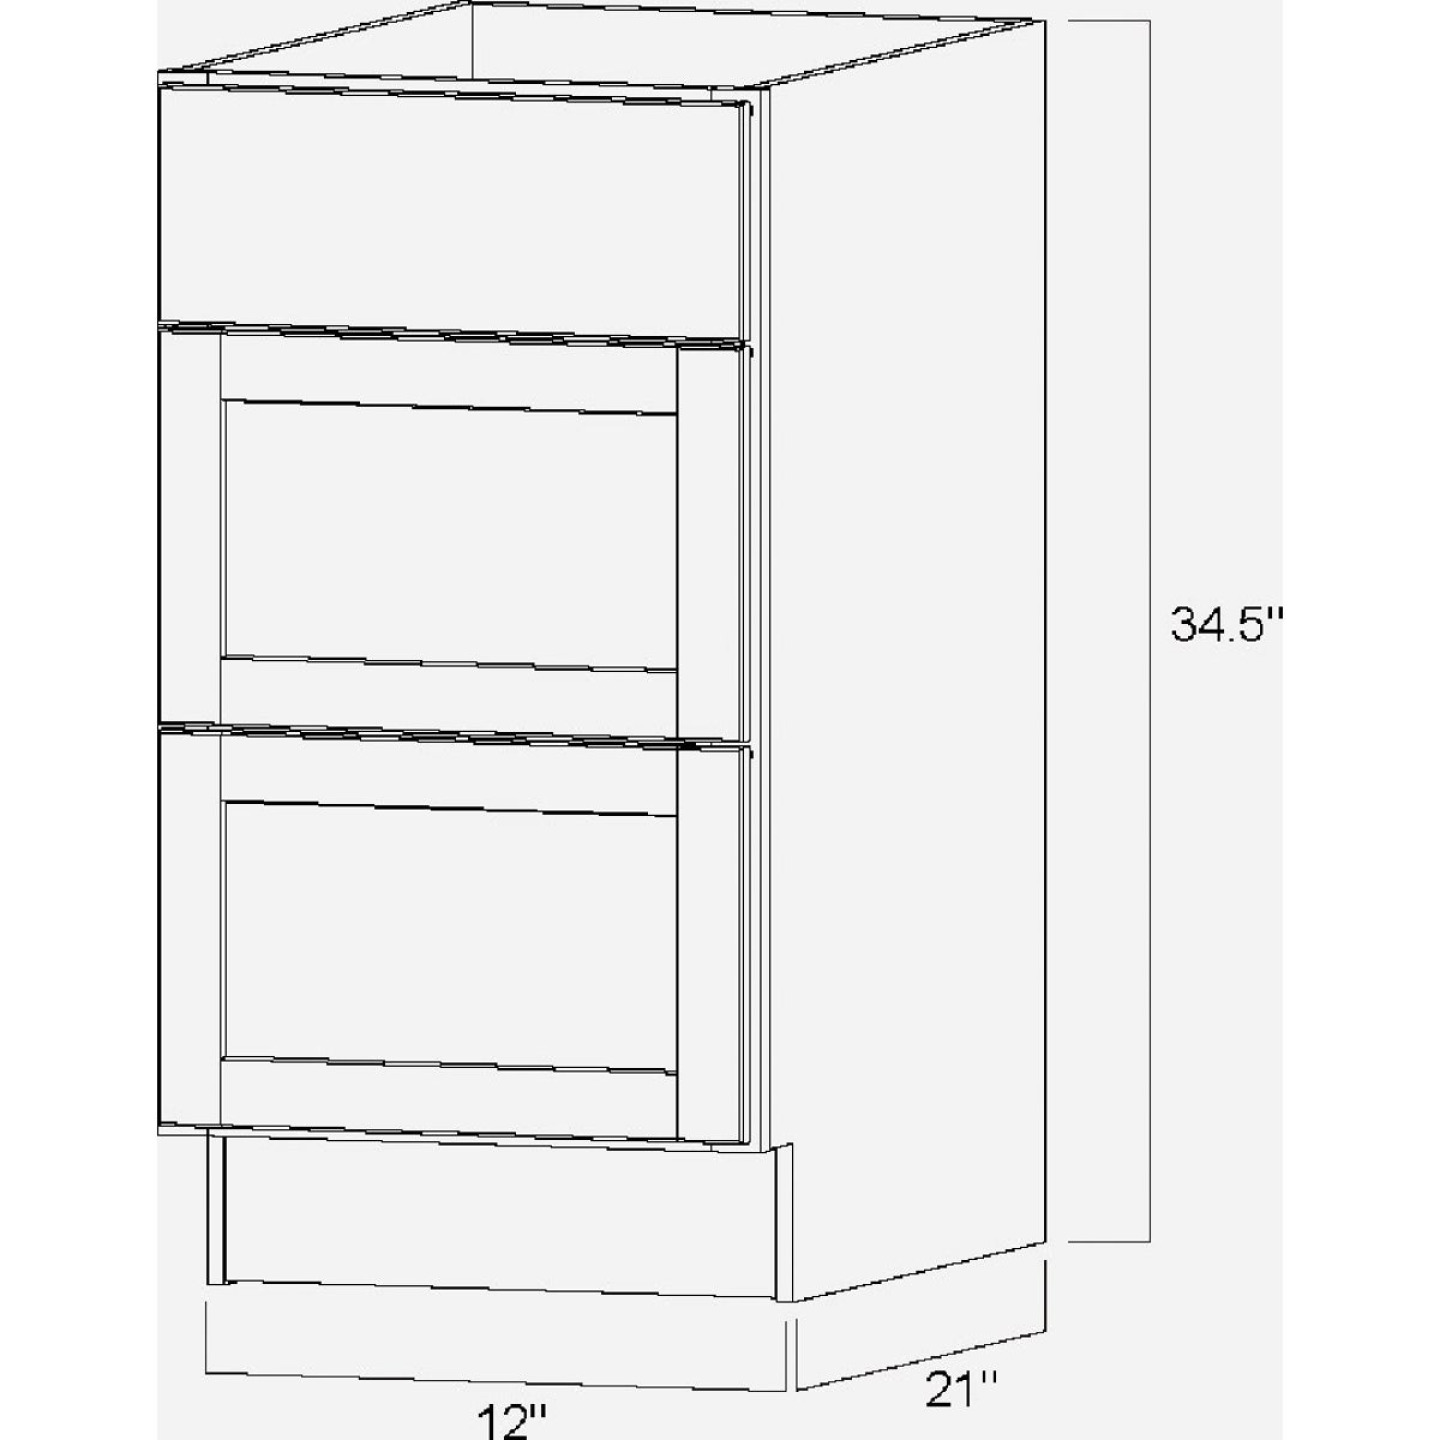 Continental Cabinets Andover Shaker 12 In. W x 34-1/2 In. H x 21 In. D White Drawer Vanity Base Image 5